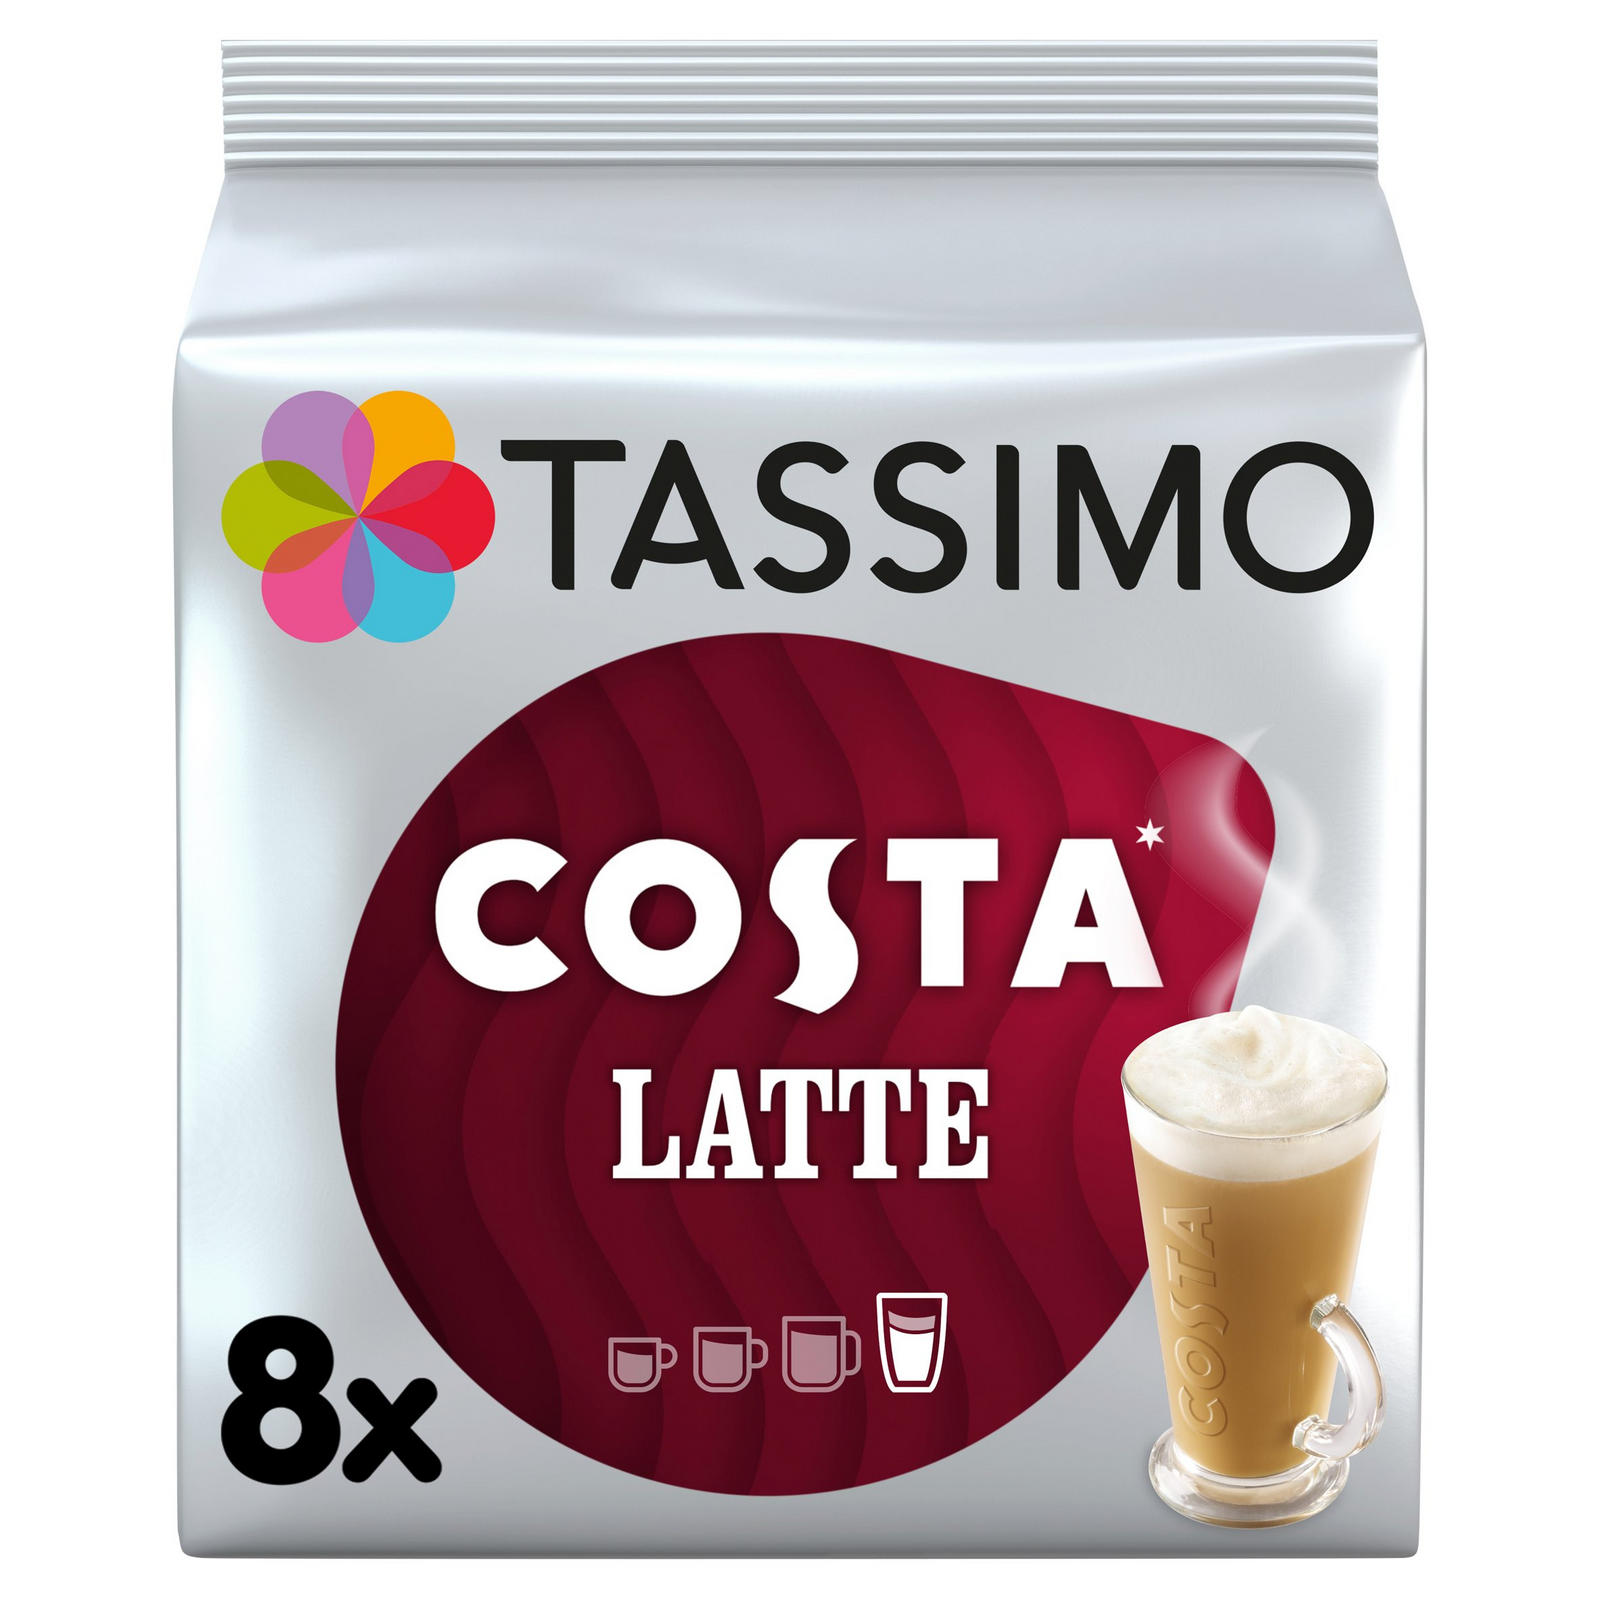 Tassimo Costa Latte Coffee Pods 8 Servings Coffee Machine